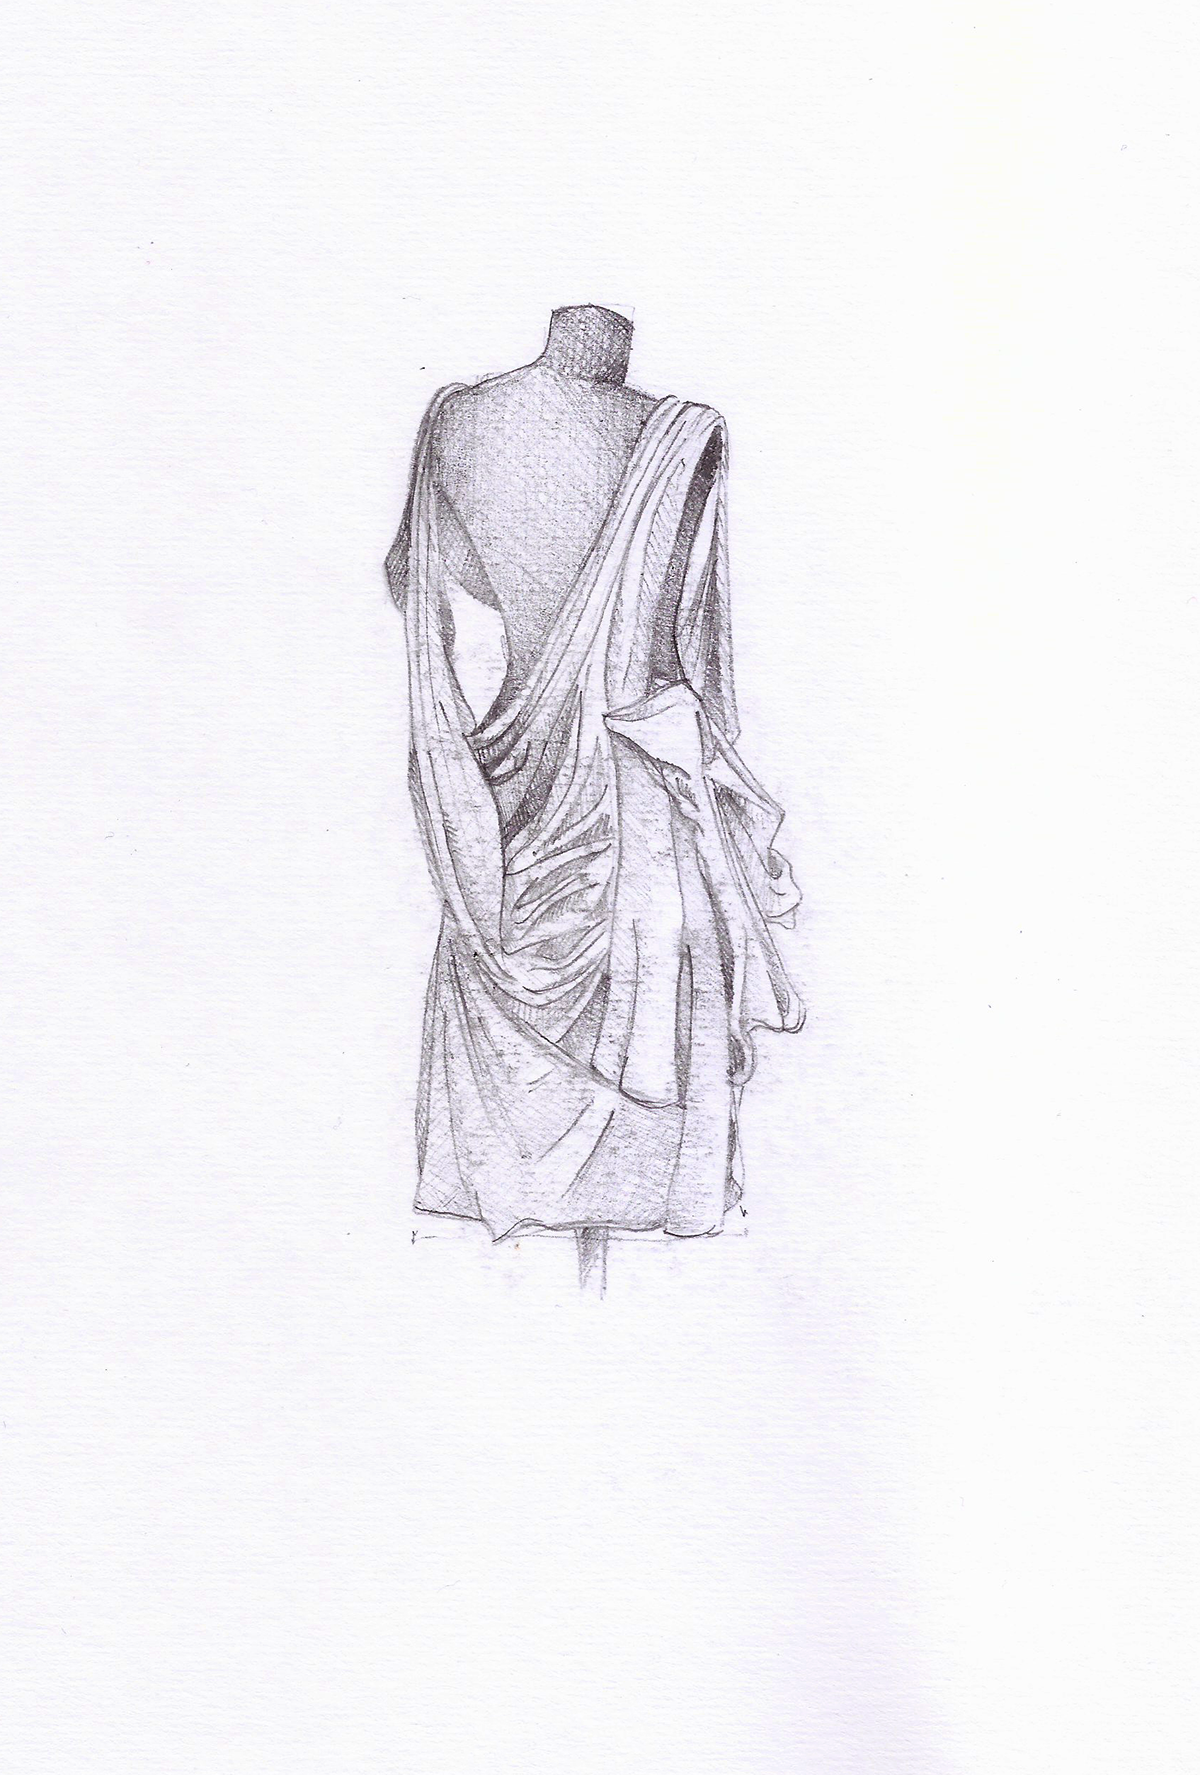 Draping Observational Drawings On Behance